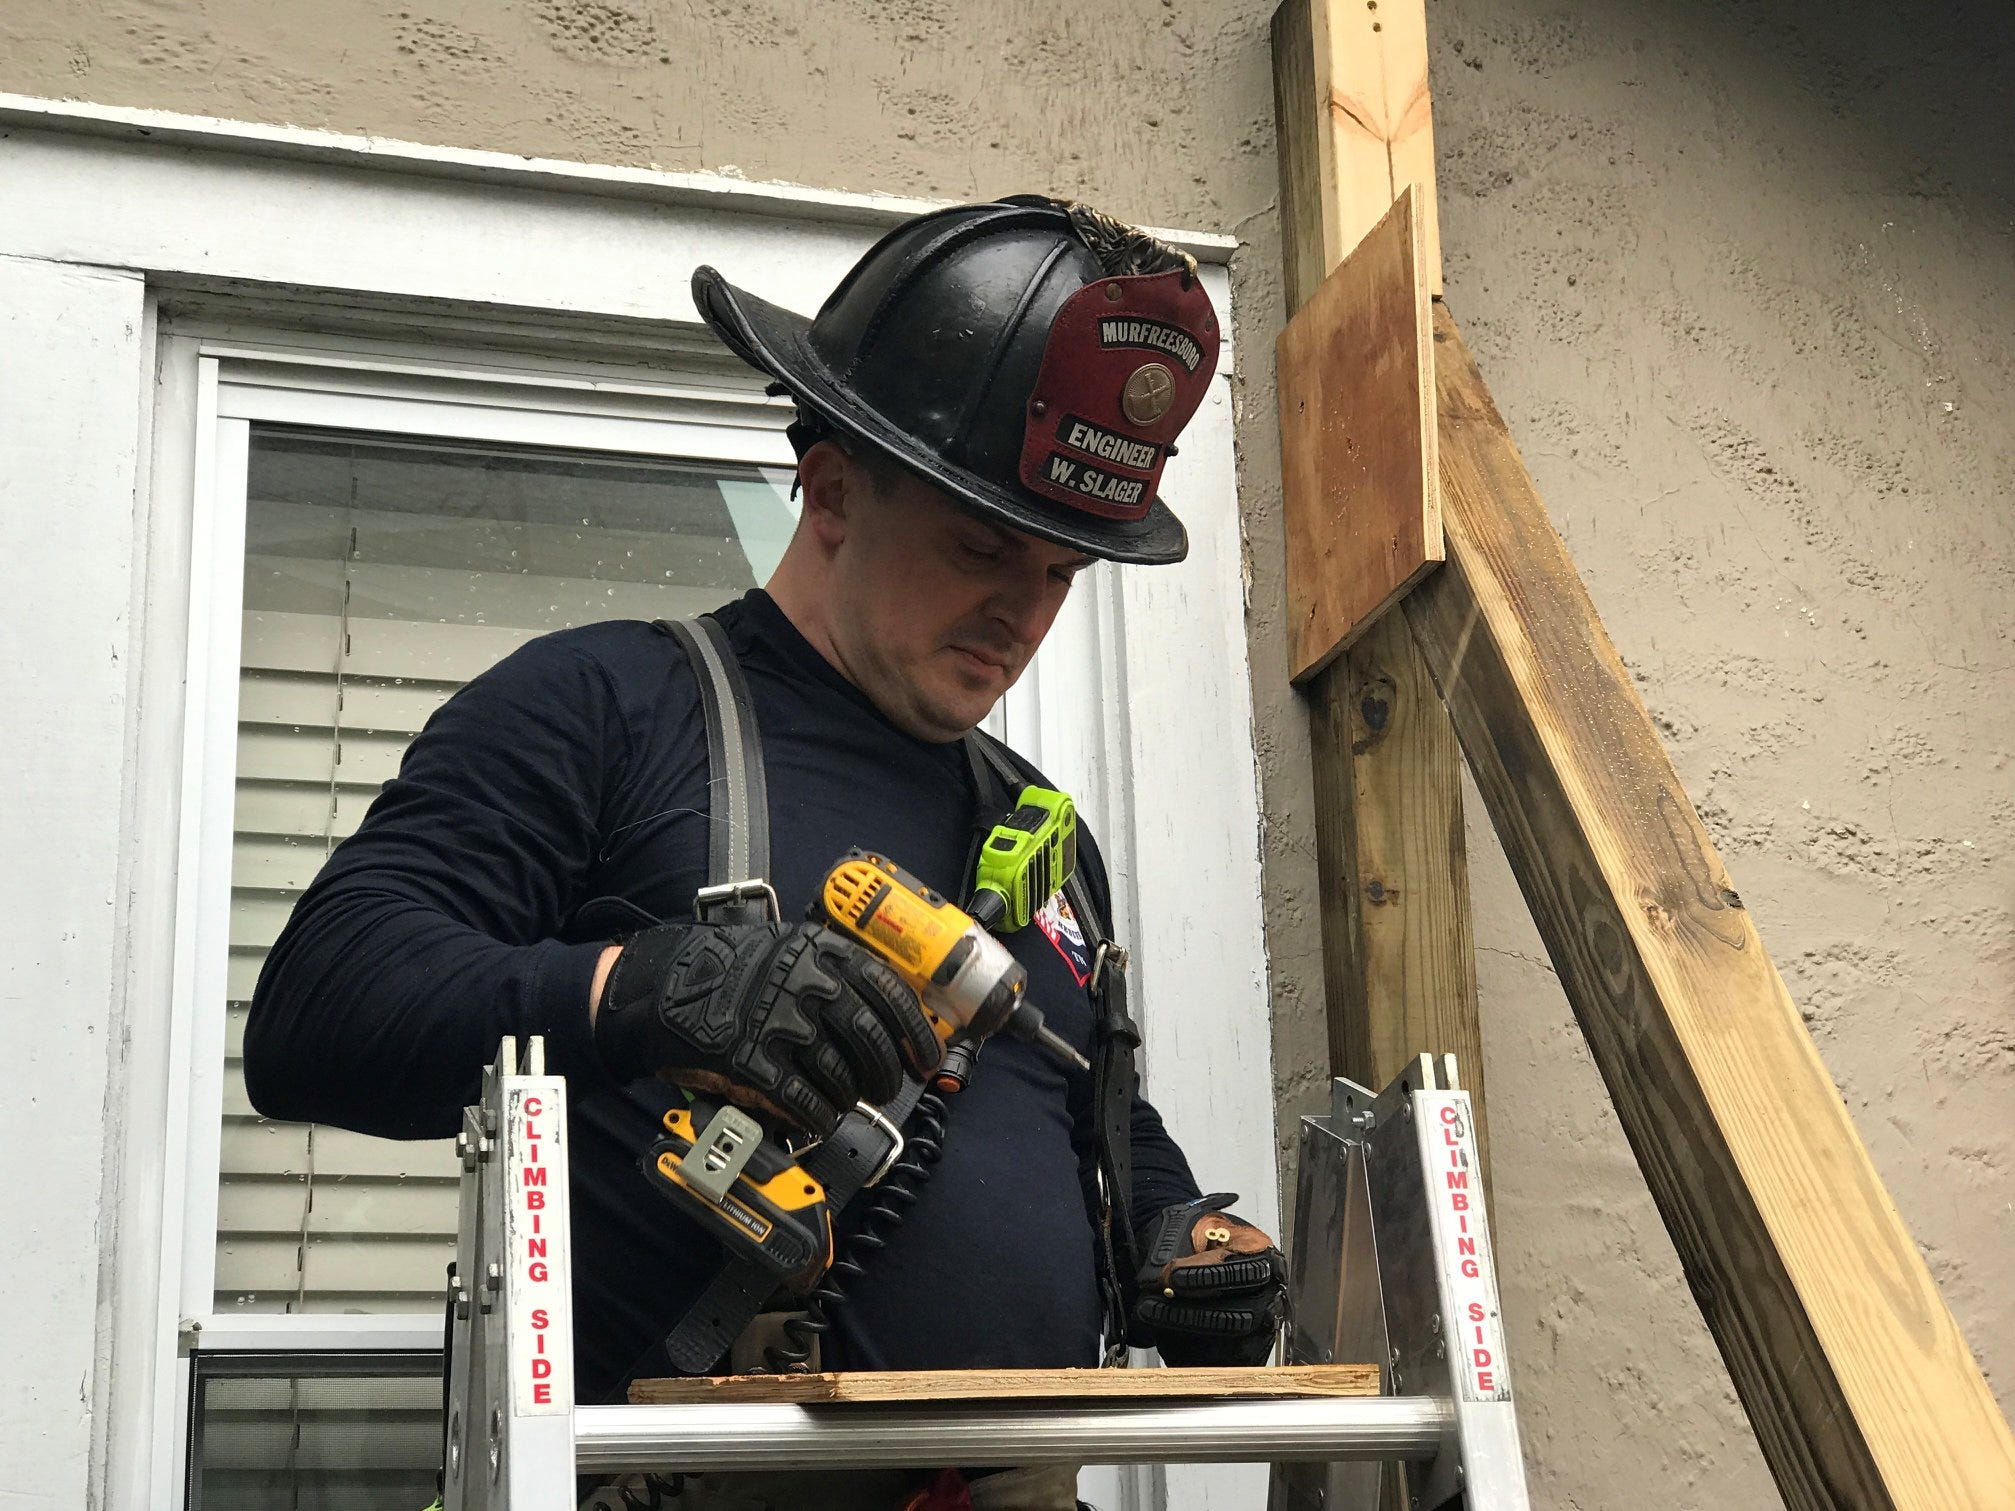 Members of Murfreesboro Fire and Rescue Department worked to shore up a home that had been damaged by a truck crashing through it Saturday, Dec. 1, 2018.